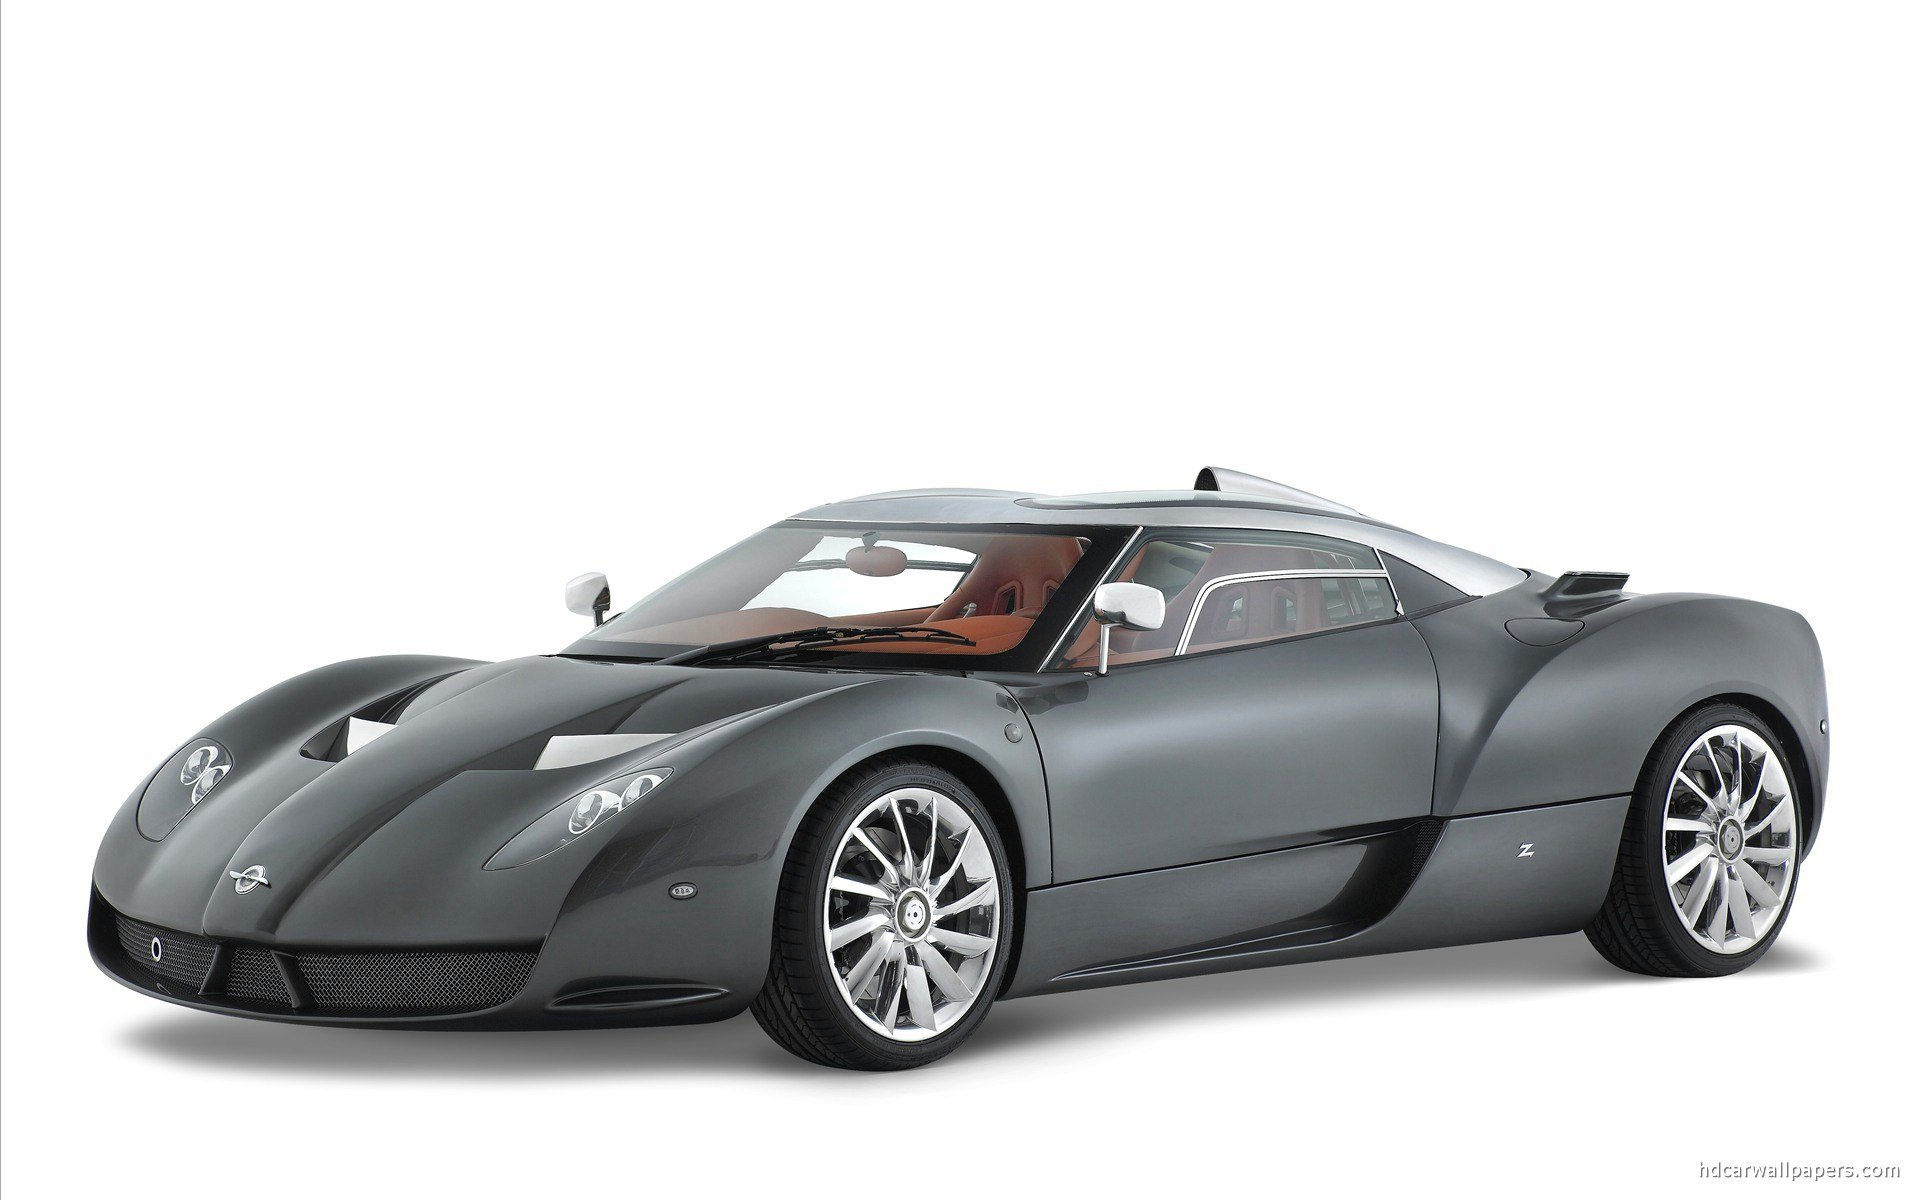 New Spyker C12 Zagato Wallpaper Hd Car Wallpapers Id 1173 On This Month